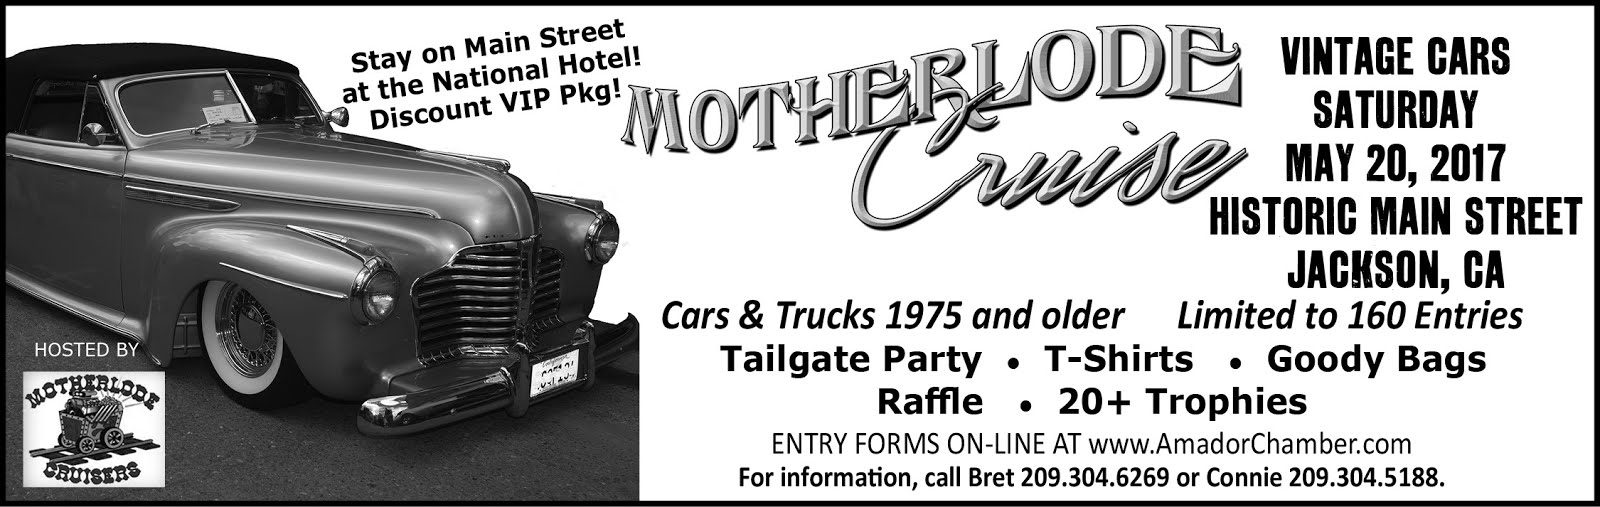 7th Annual Motherlode Cruise- Sat May 20